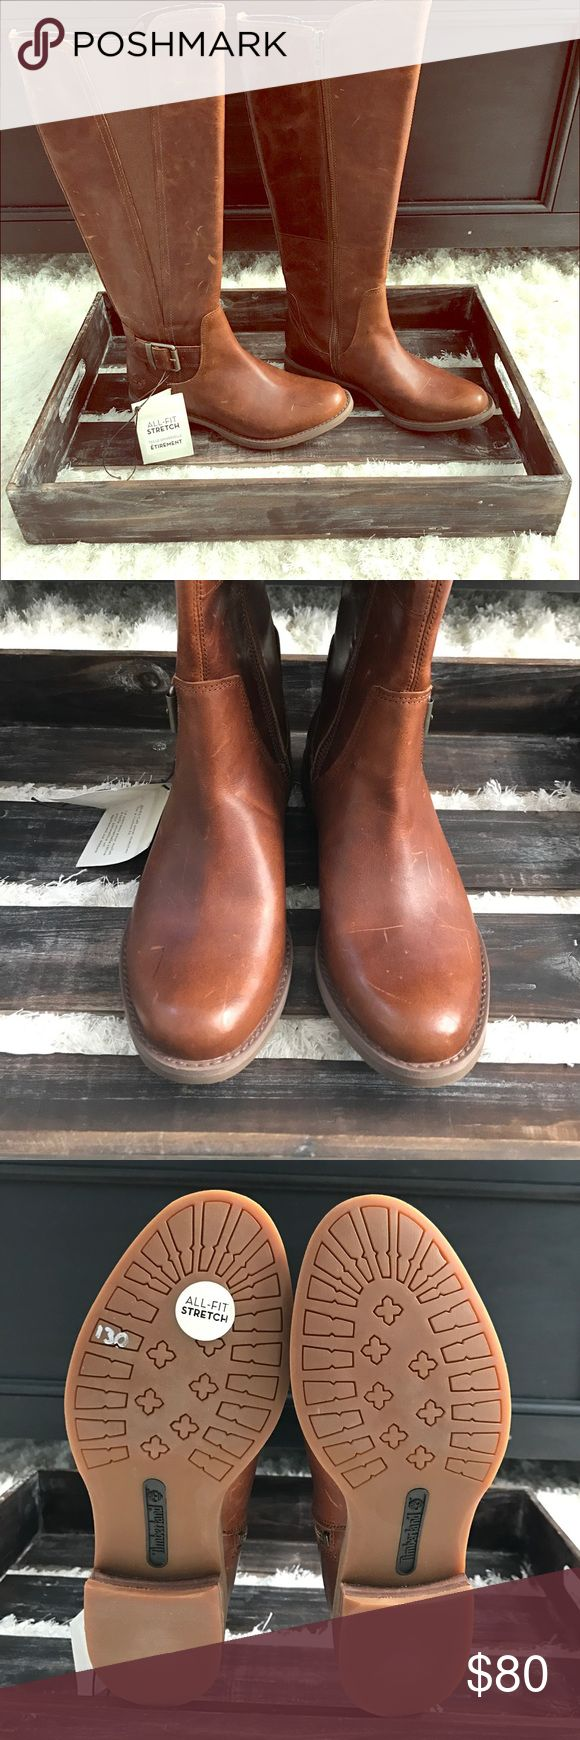 """BRAND NEW TIMBERLAND BOOTS 🎉🎉 PRICE DROP !! Brand NEW gorgeous brown leather Timber Hill Tall Savin boots! Super comfy soft leather and guaranteed """"all fit stretch"""" as seen on tag! 👢❤️ Timberland Shoes"""